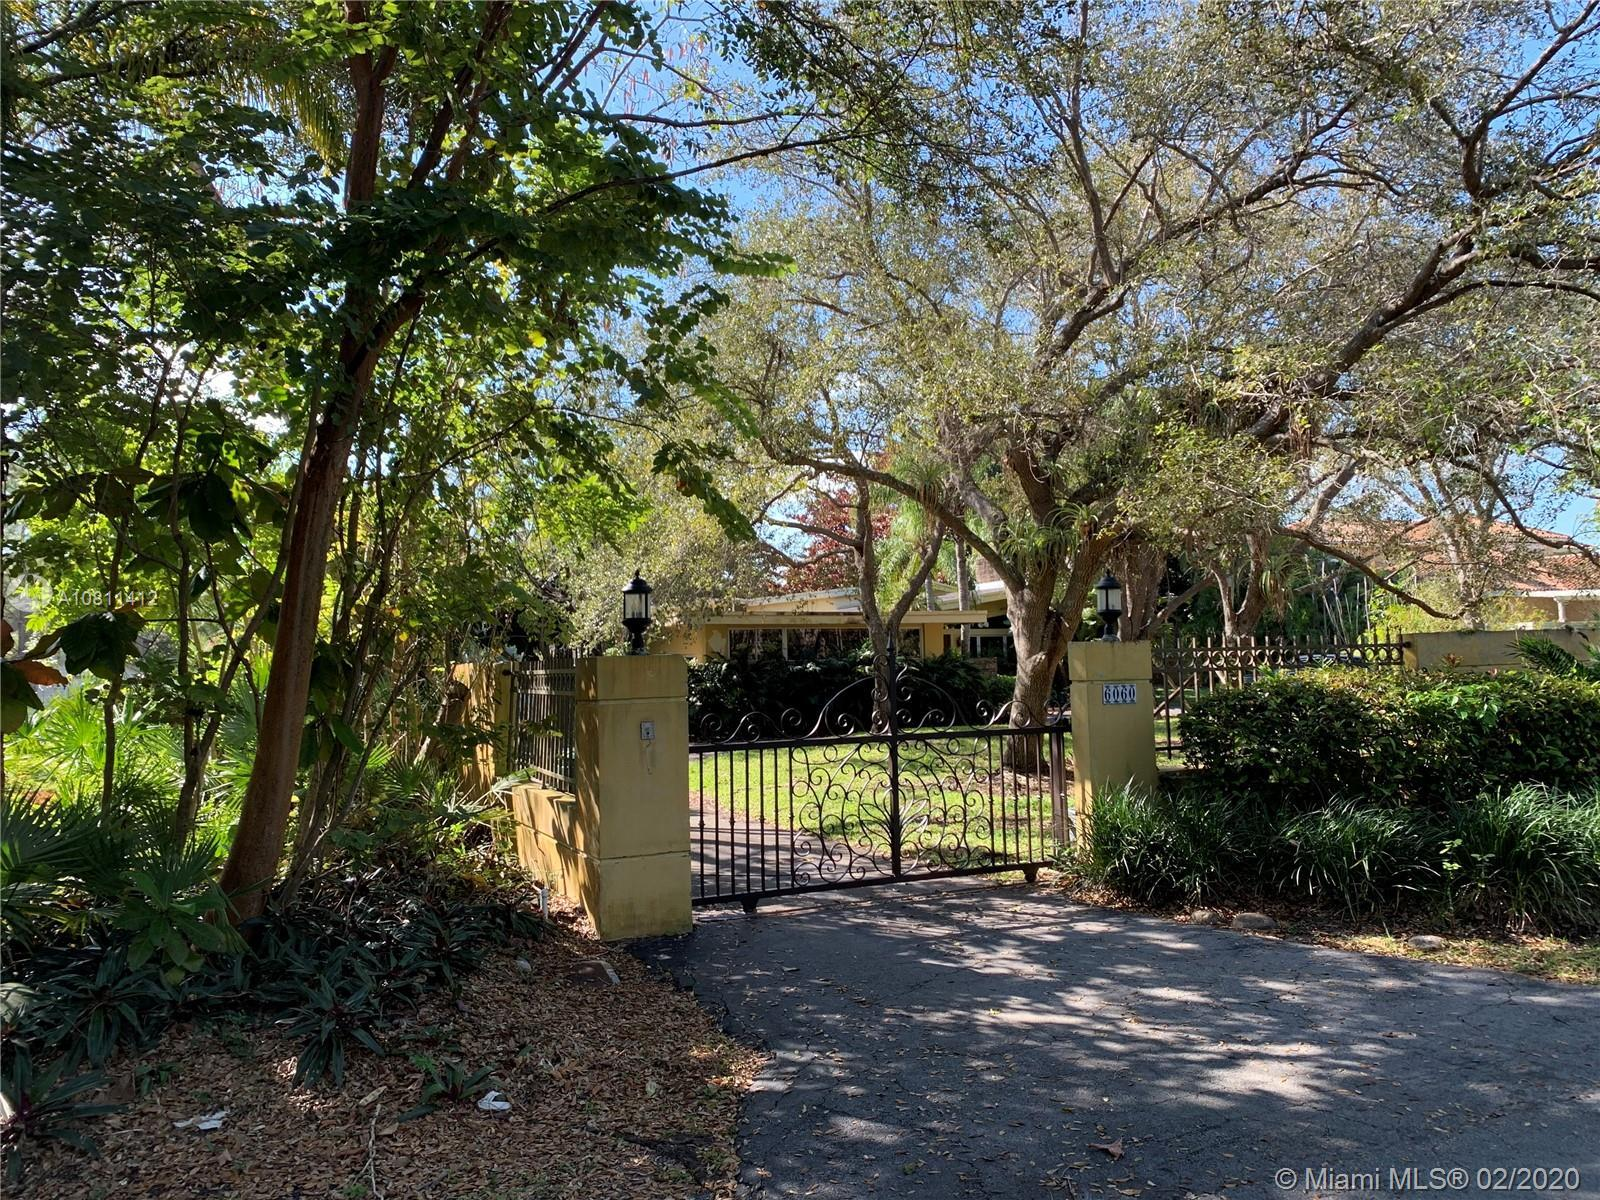 This is a wonderful opportunity to own this great home in this much desired Pinecrest neighborhood.